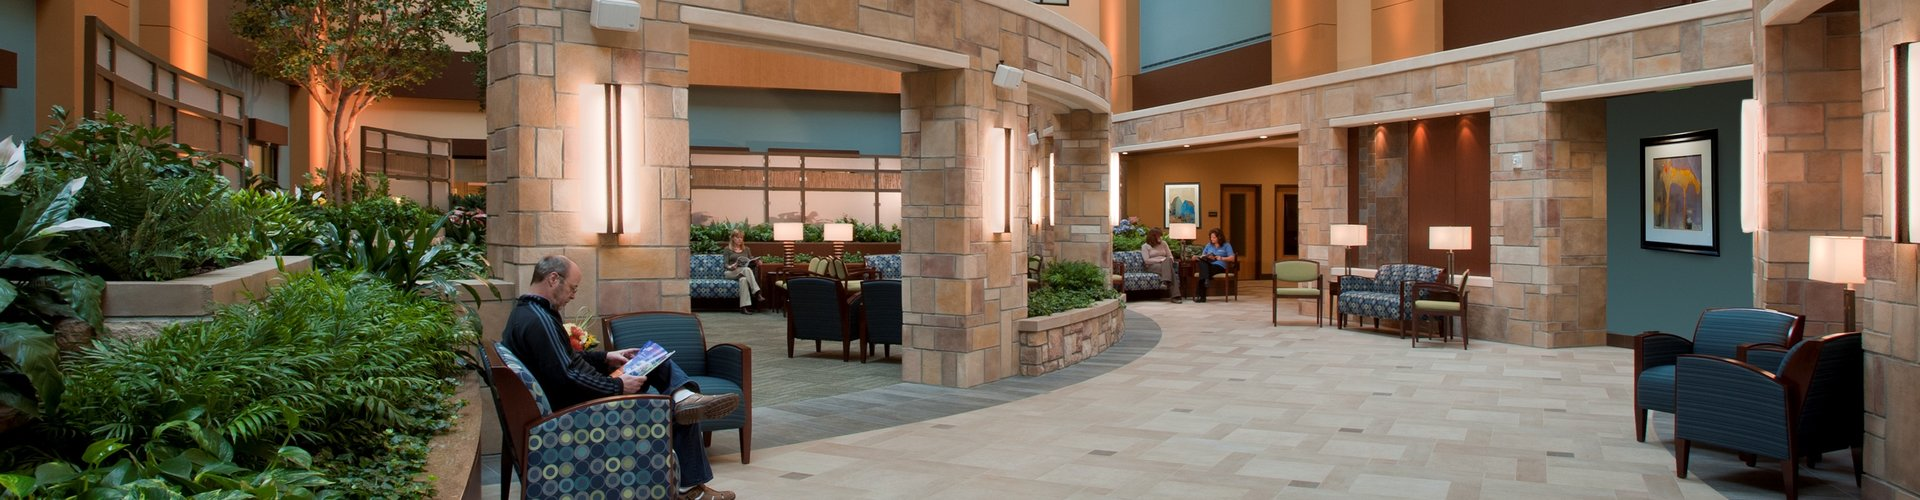 St. Anthony Hospital And Medical Campus, Submitted By Earl Swensson Associates, Inc.